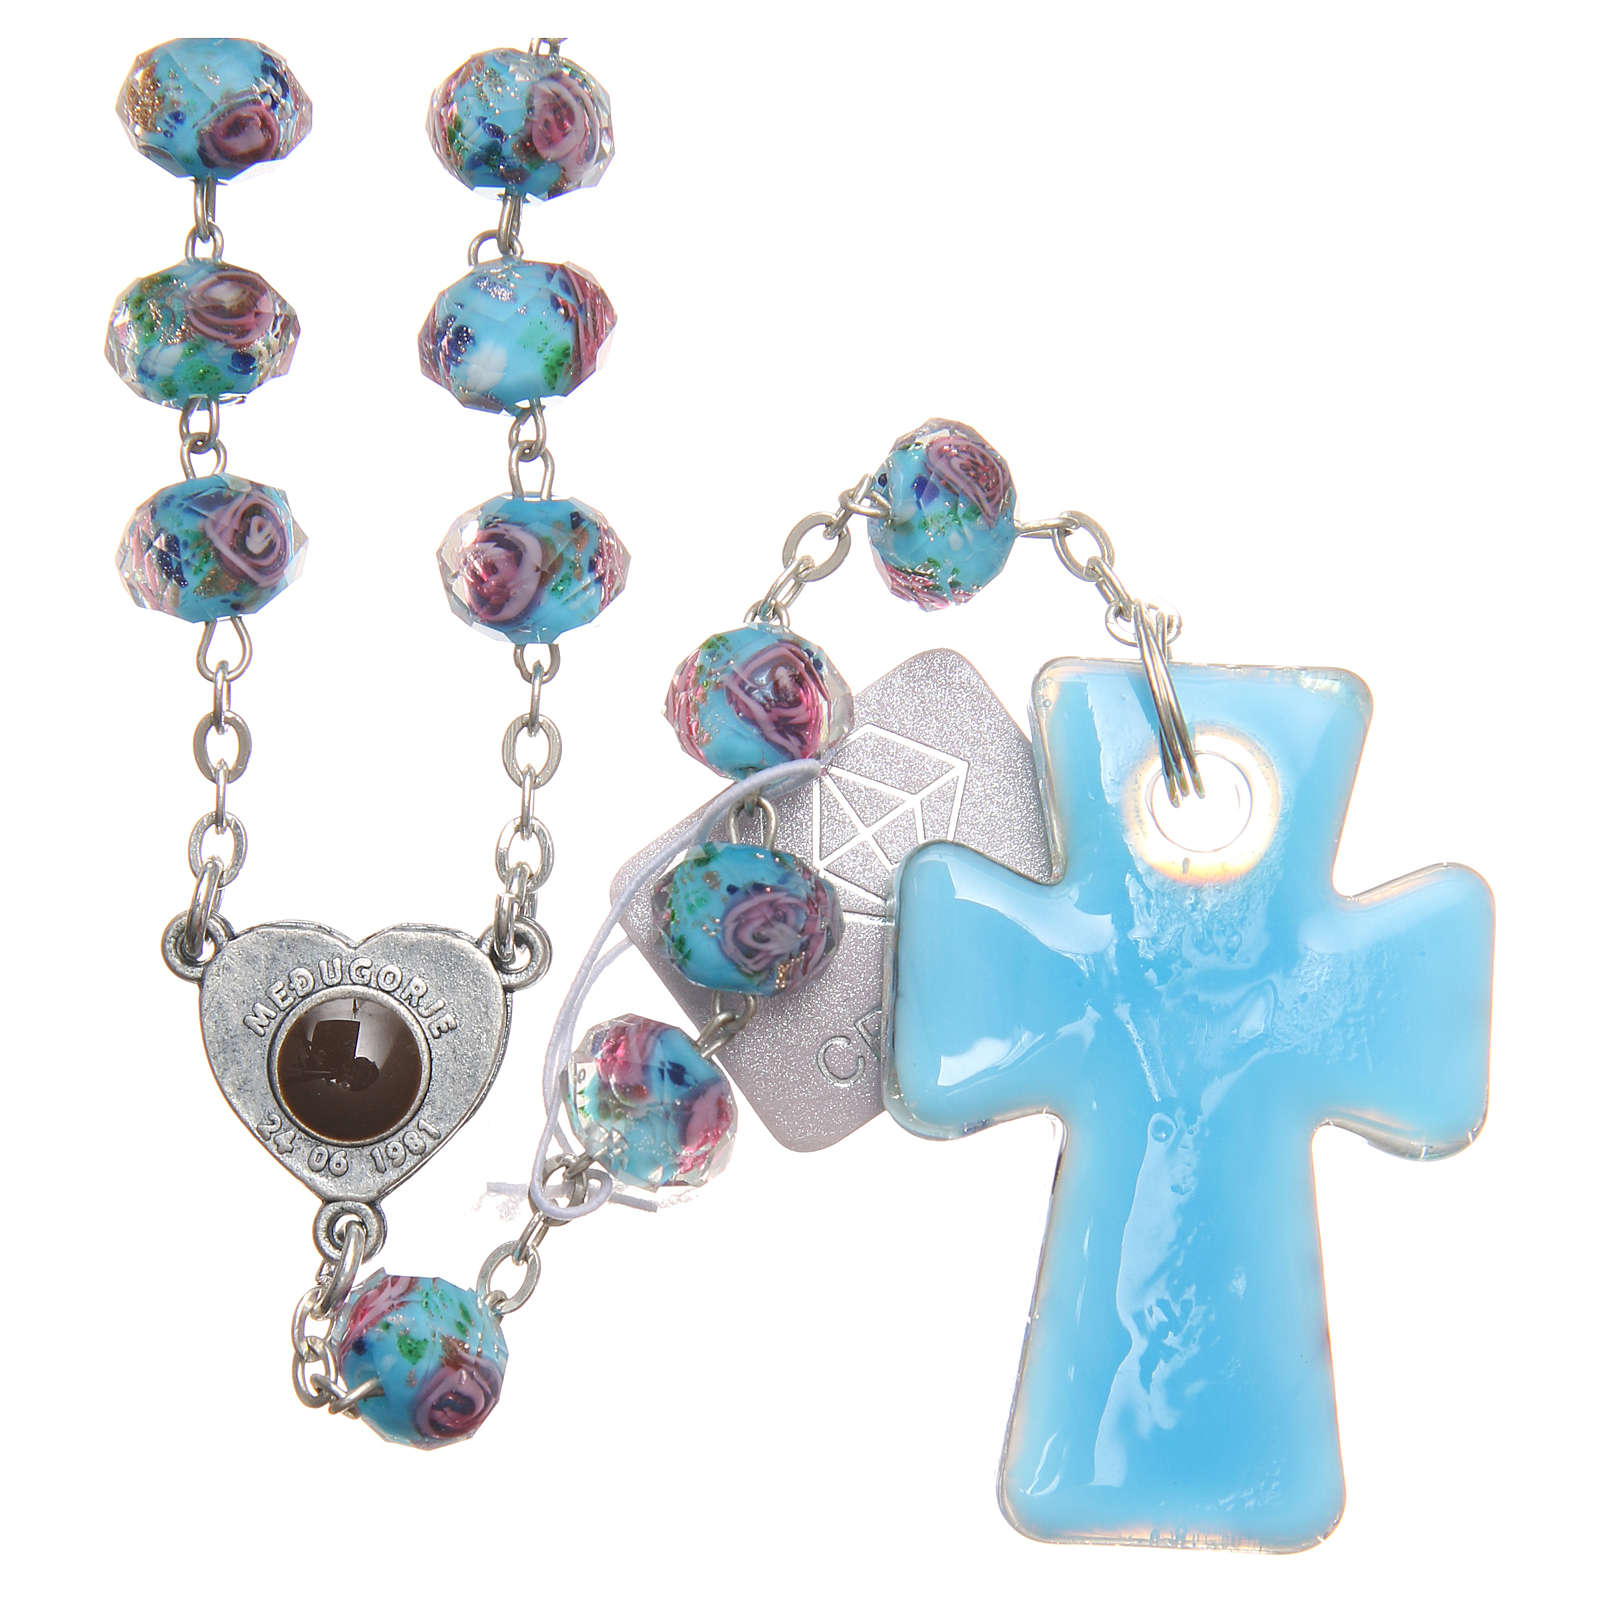 Medjugorje rosary with cross in blue Murano glass 4